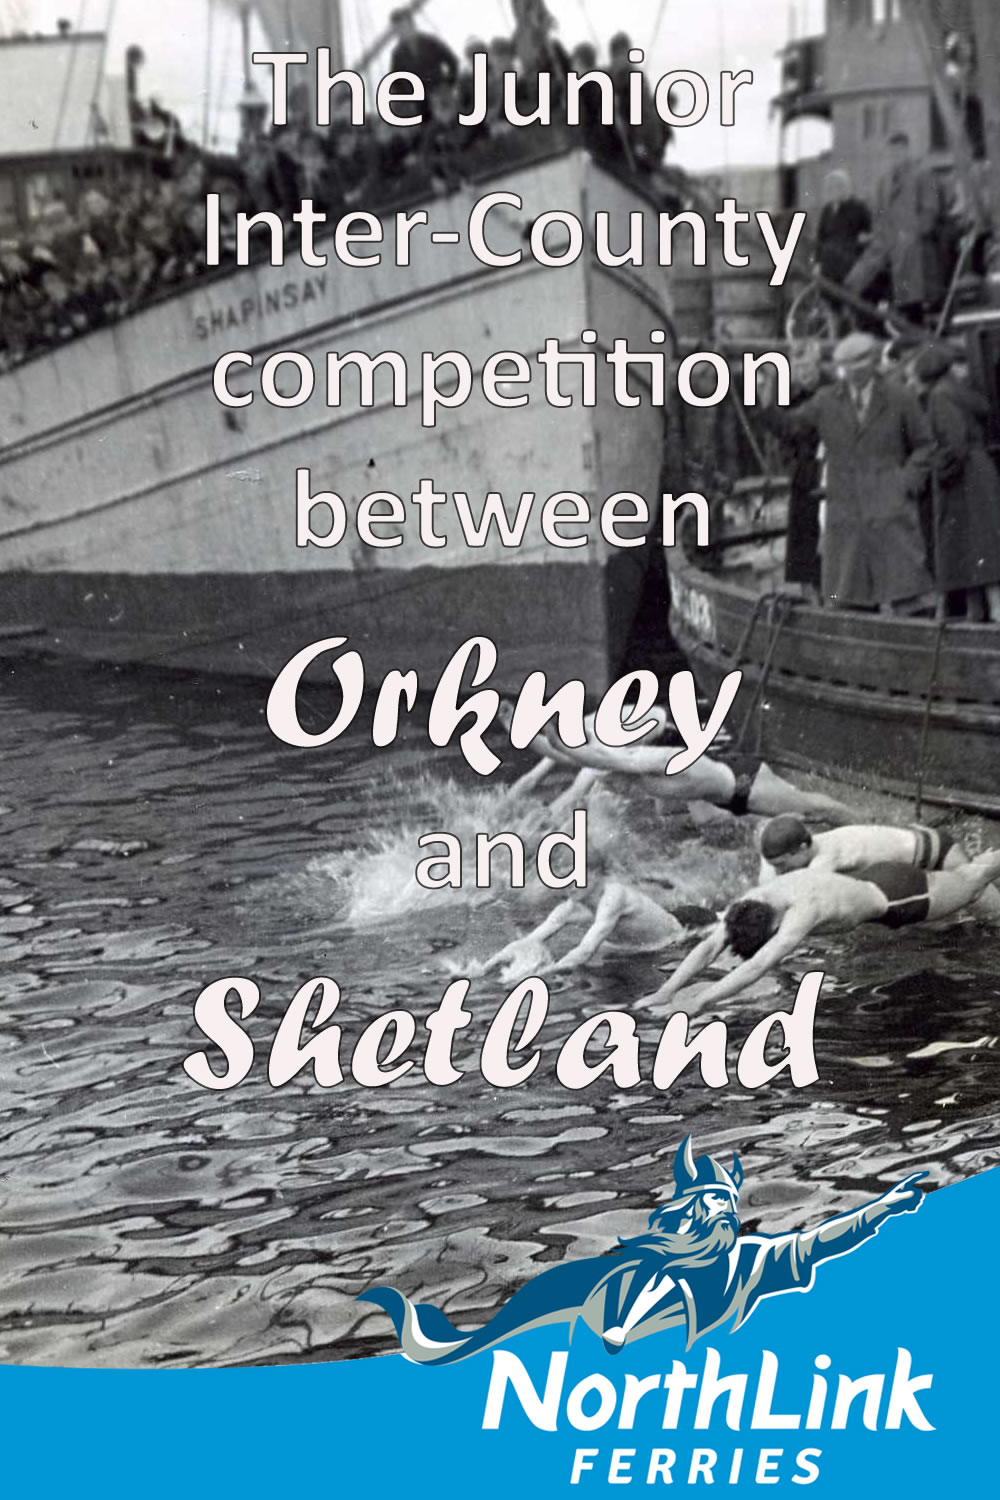 The Junior Inter-County competition between Orkney and Shetland